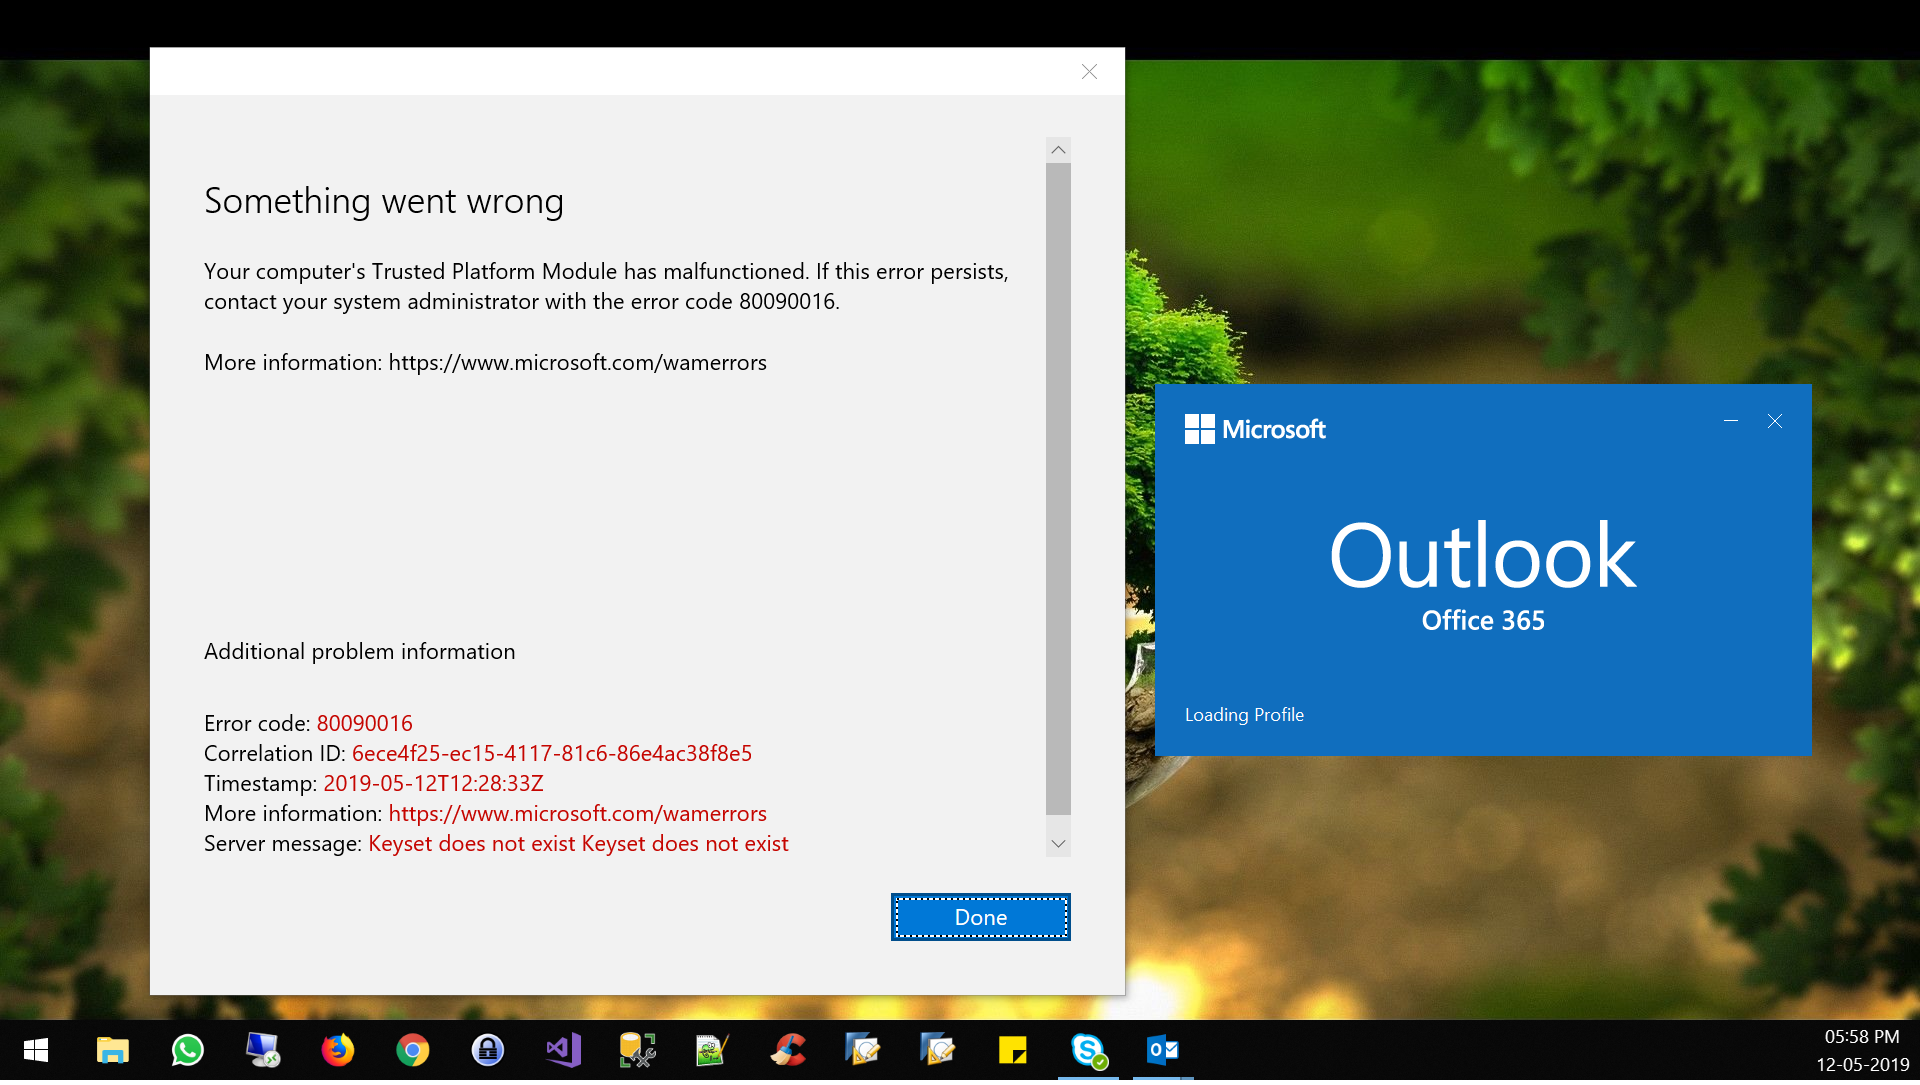 Keyset does not exist  Outlook throw an error if I try to login with